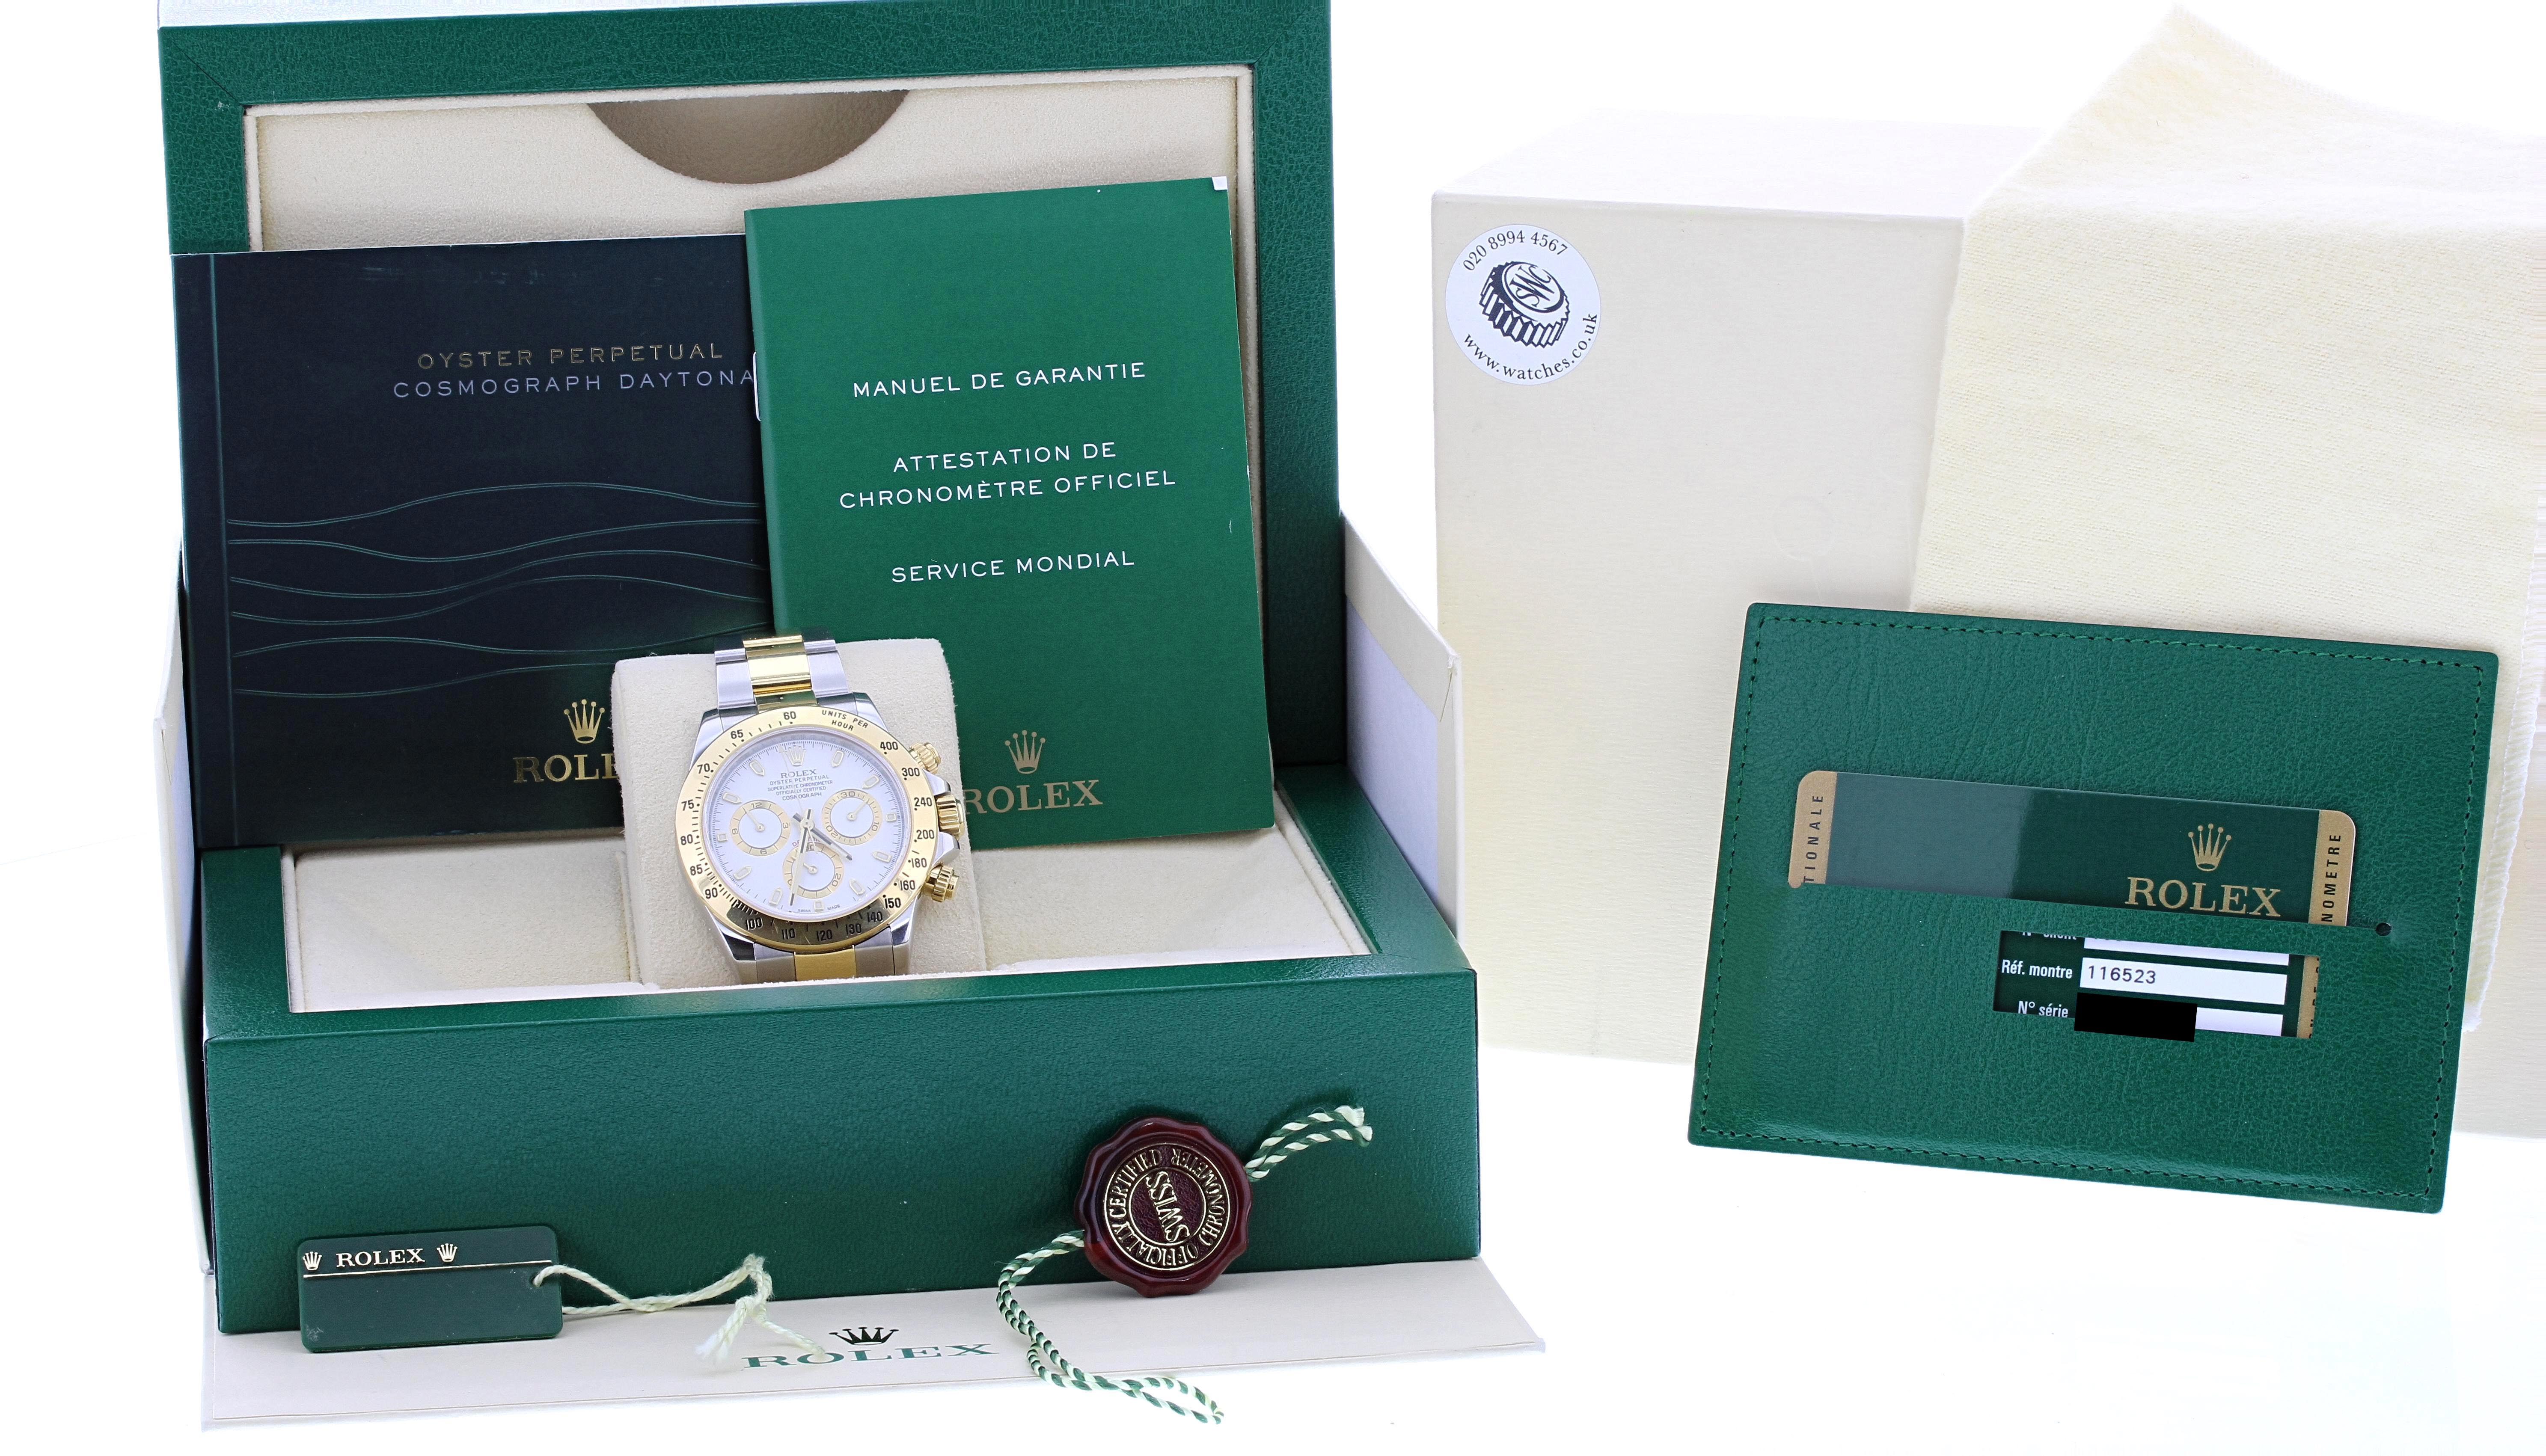 Lot 60 - Rolex Oyster Perpetual Cosmograph Daytona gold and stainless steel gentleman's bracelet watch,